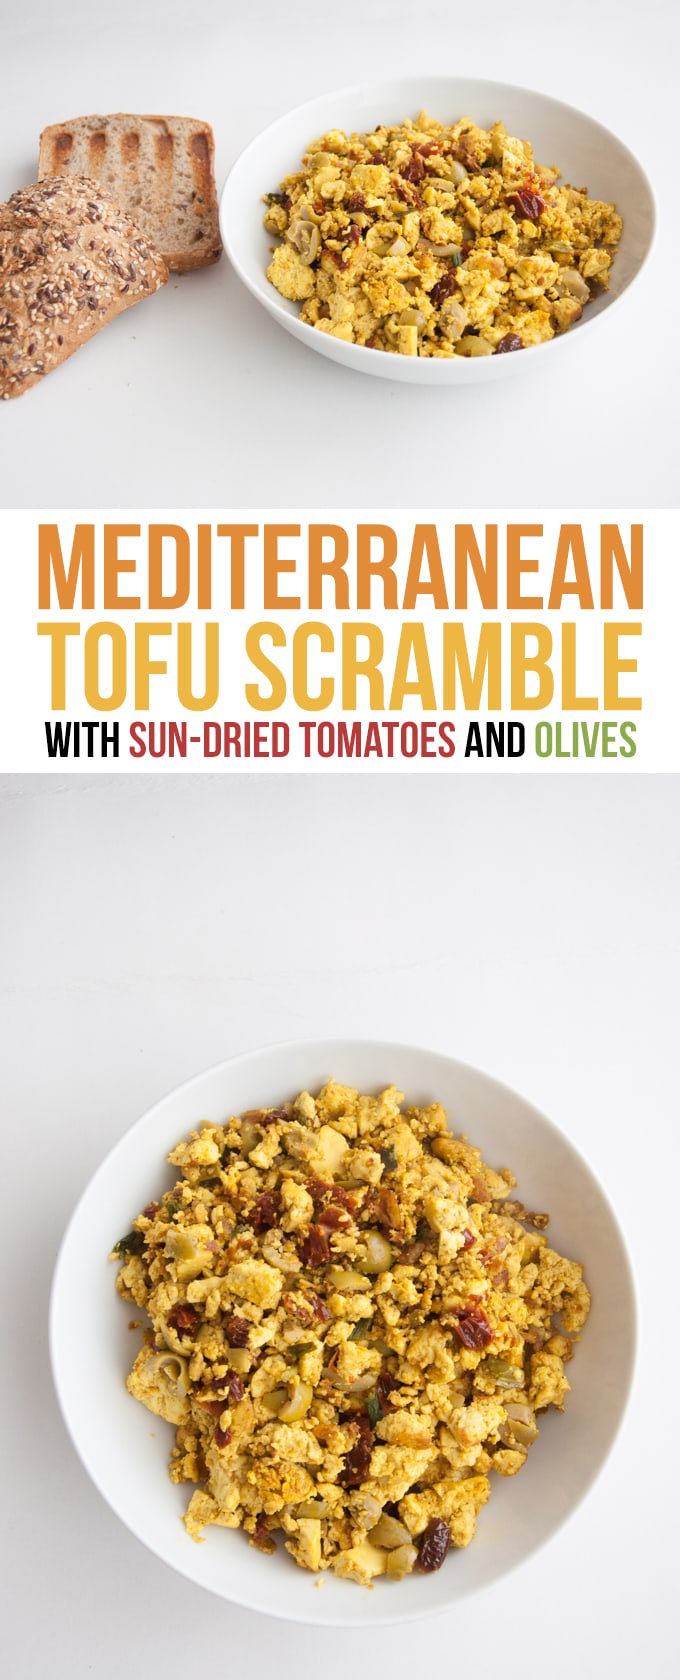 Mediterranean Tofu Scramble with sun-dried tomatoes and olives #vegan #tofuscramble #olives #veganbreakfast | ElephantasticVegan.com